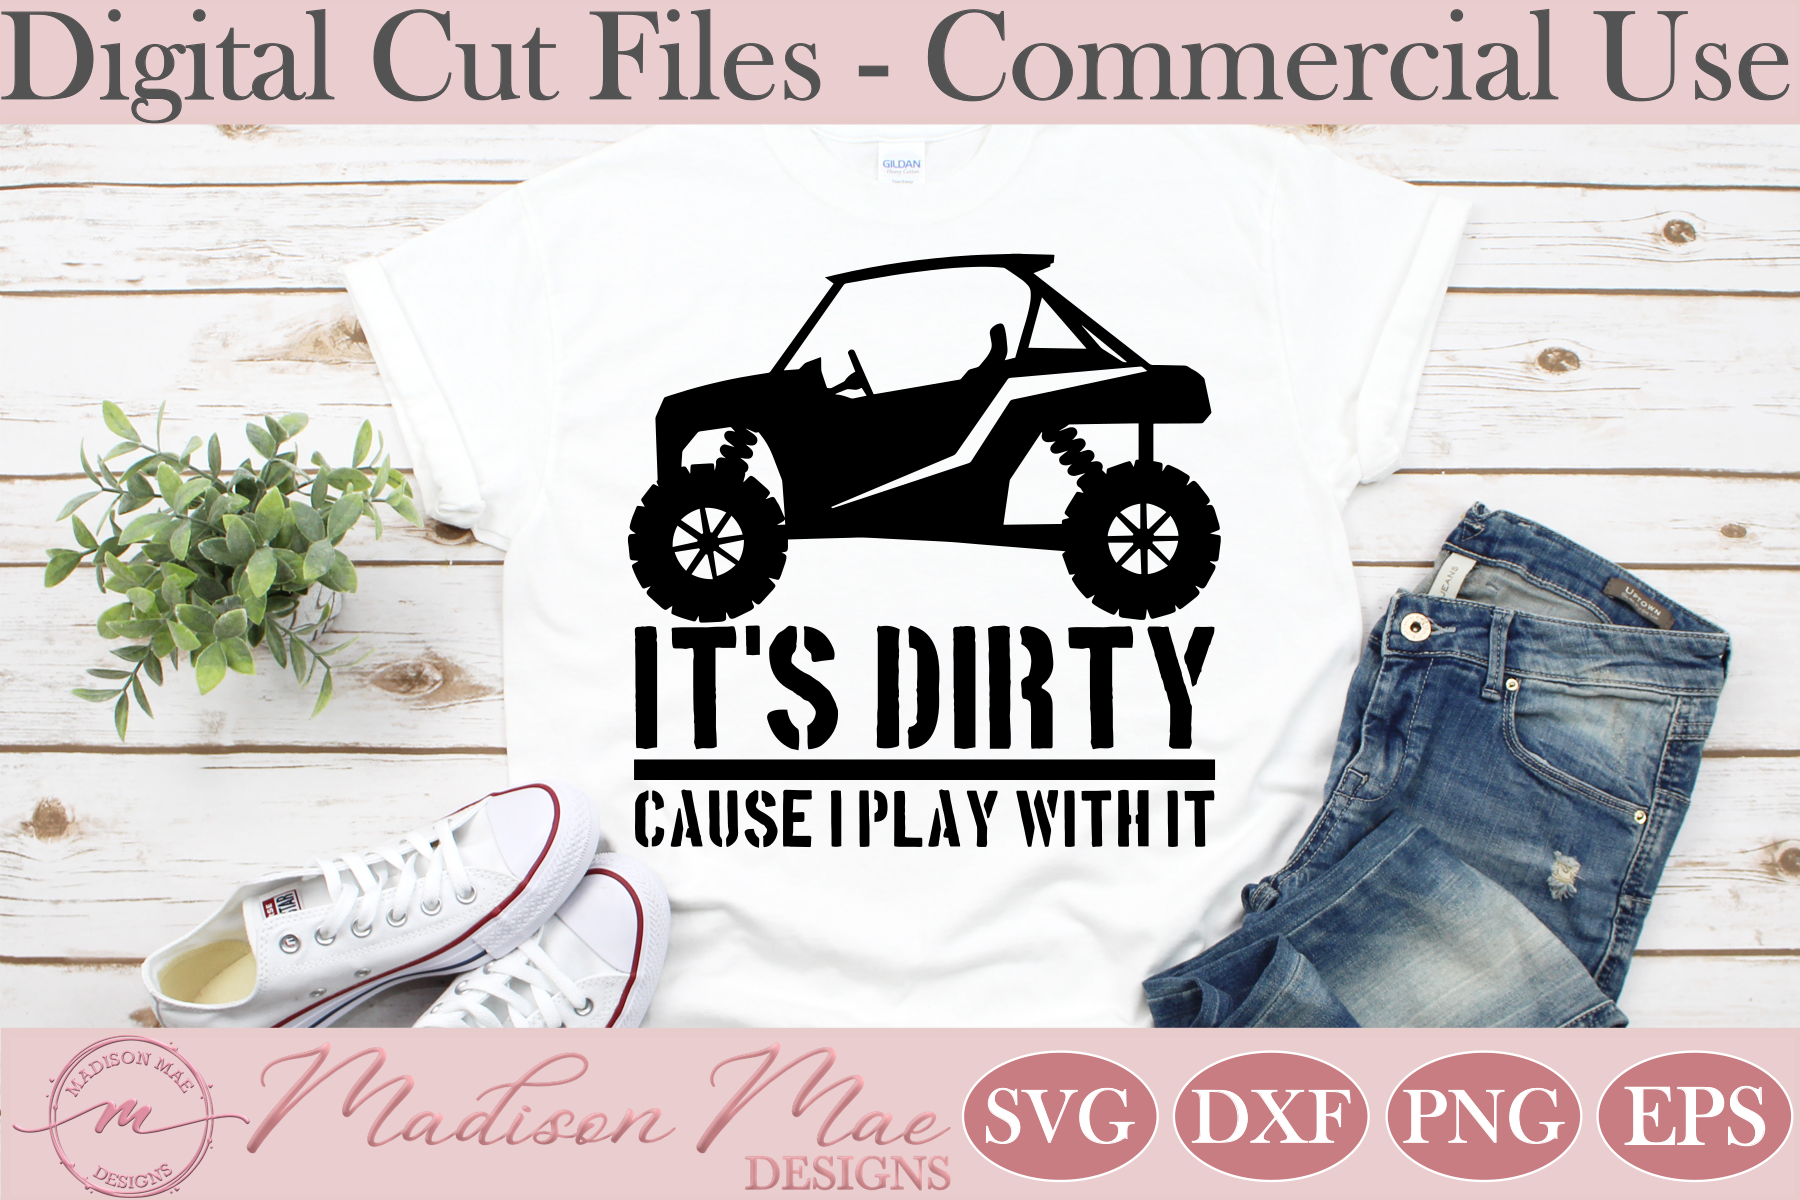 Download Free Side By Side Svg Off Roading Svg Graphic By Madison Mae Designs for Cricut Explore, Silhouette and other cutting machines.